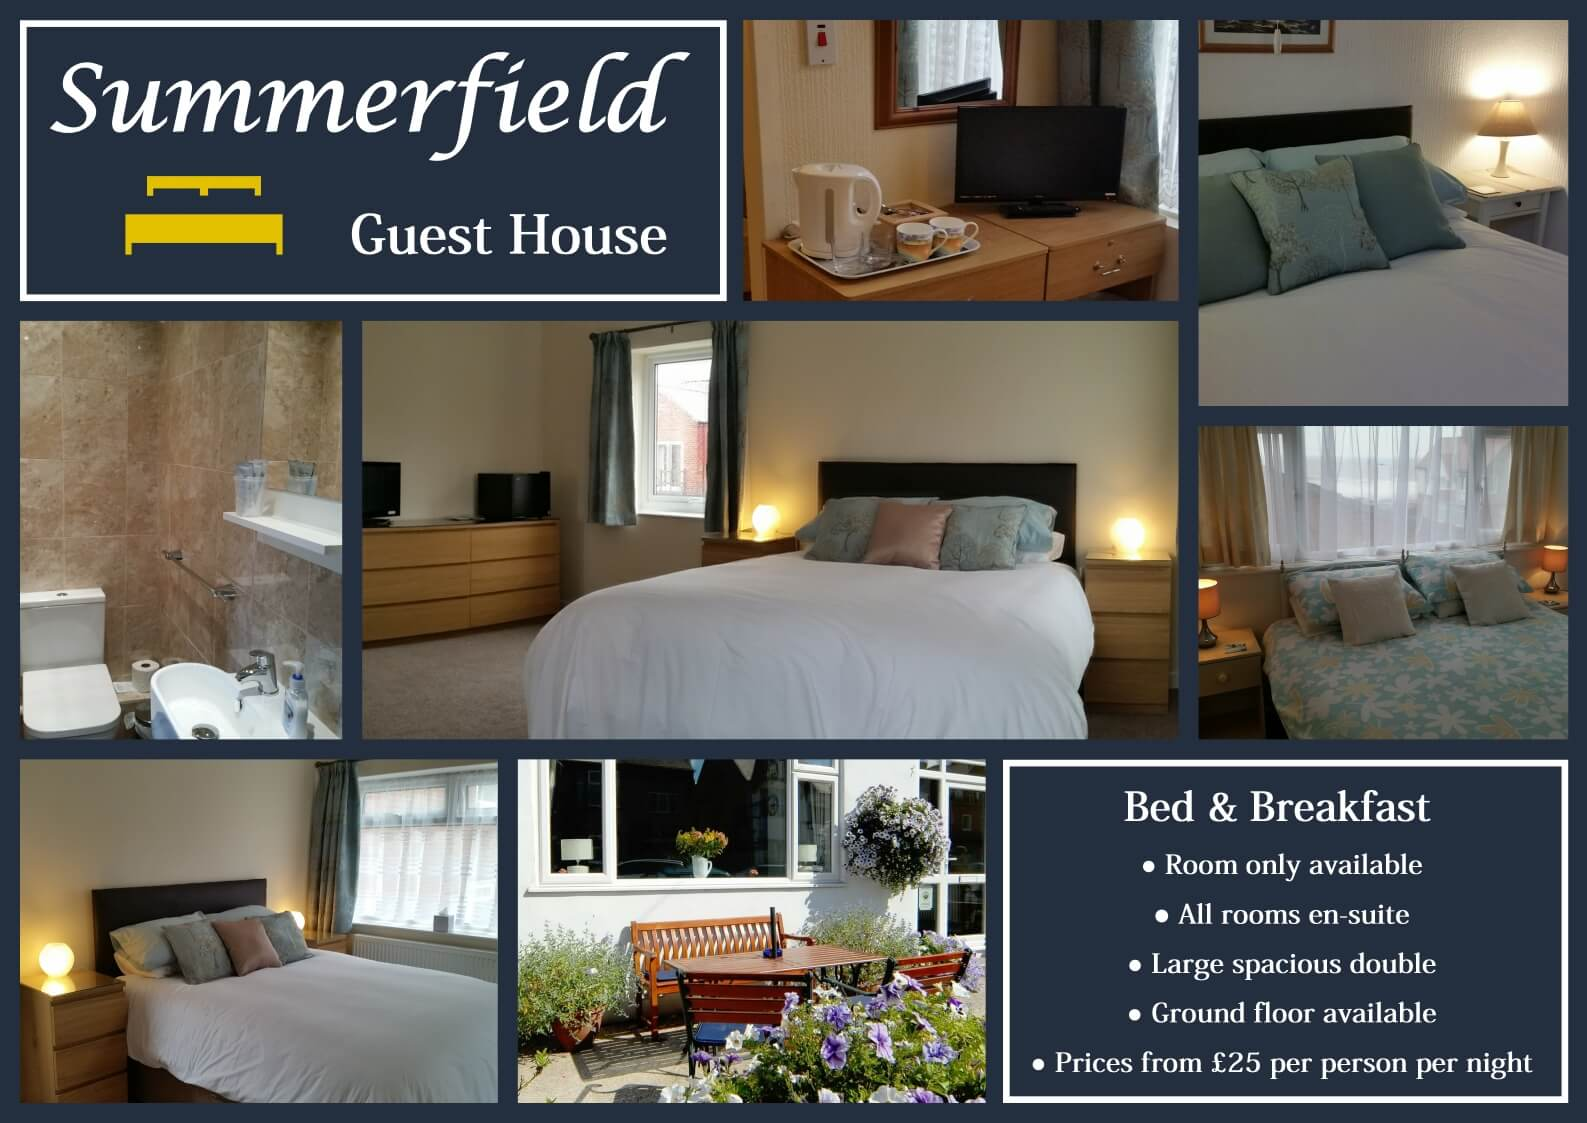 Summerfield Guest House information collage